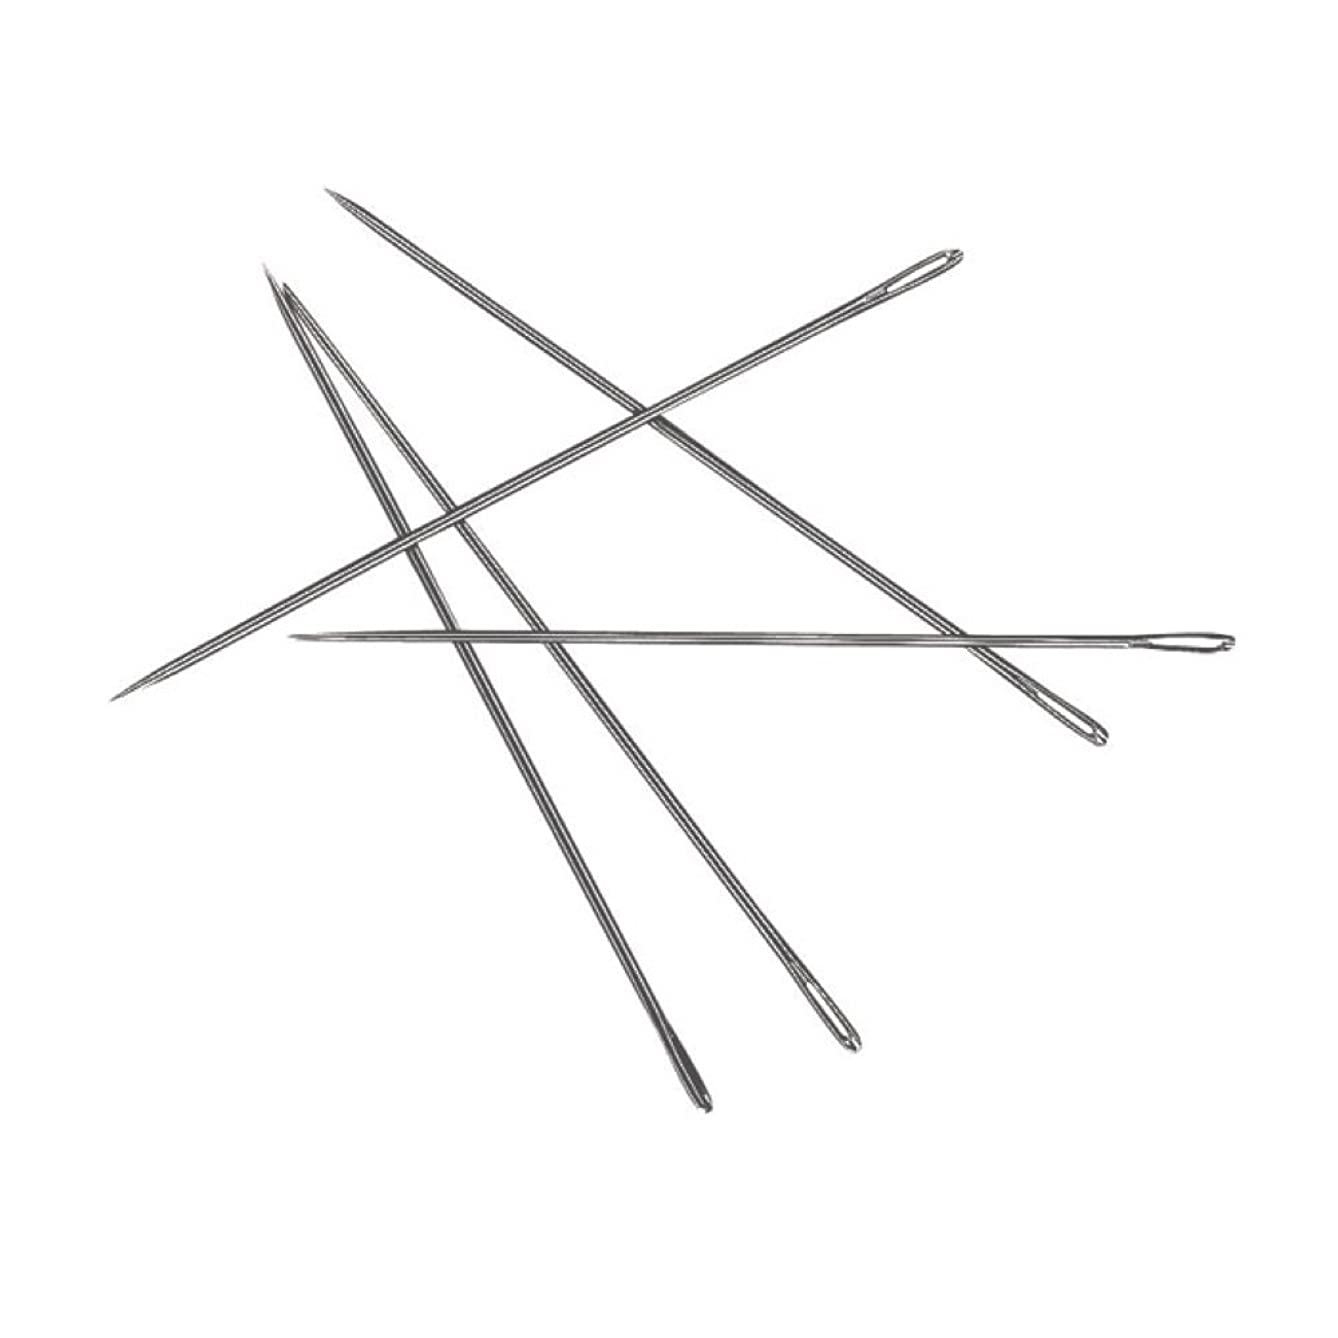 Lineco Book Binding Stainless Steel Needles, Package of 5 (870-887)